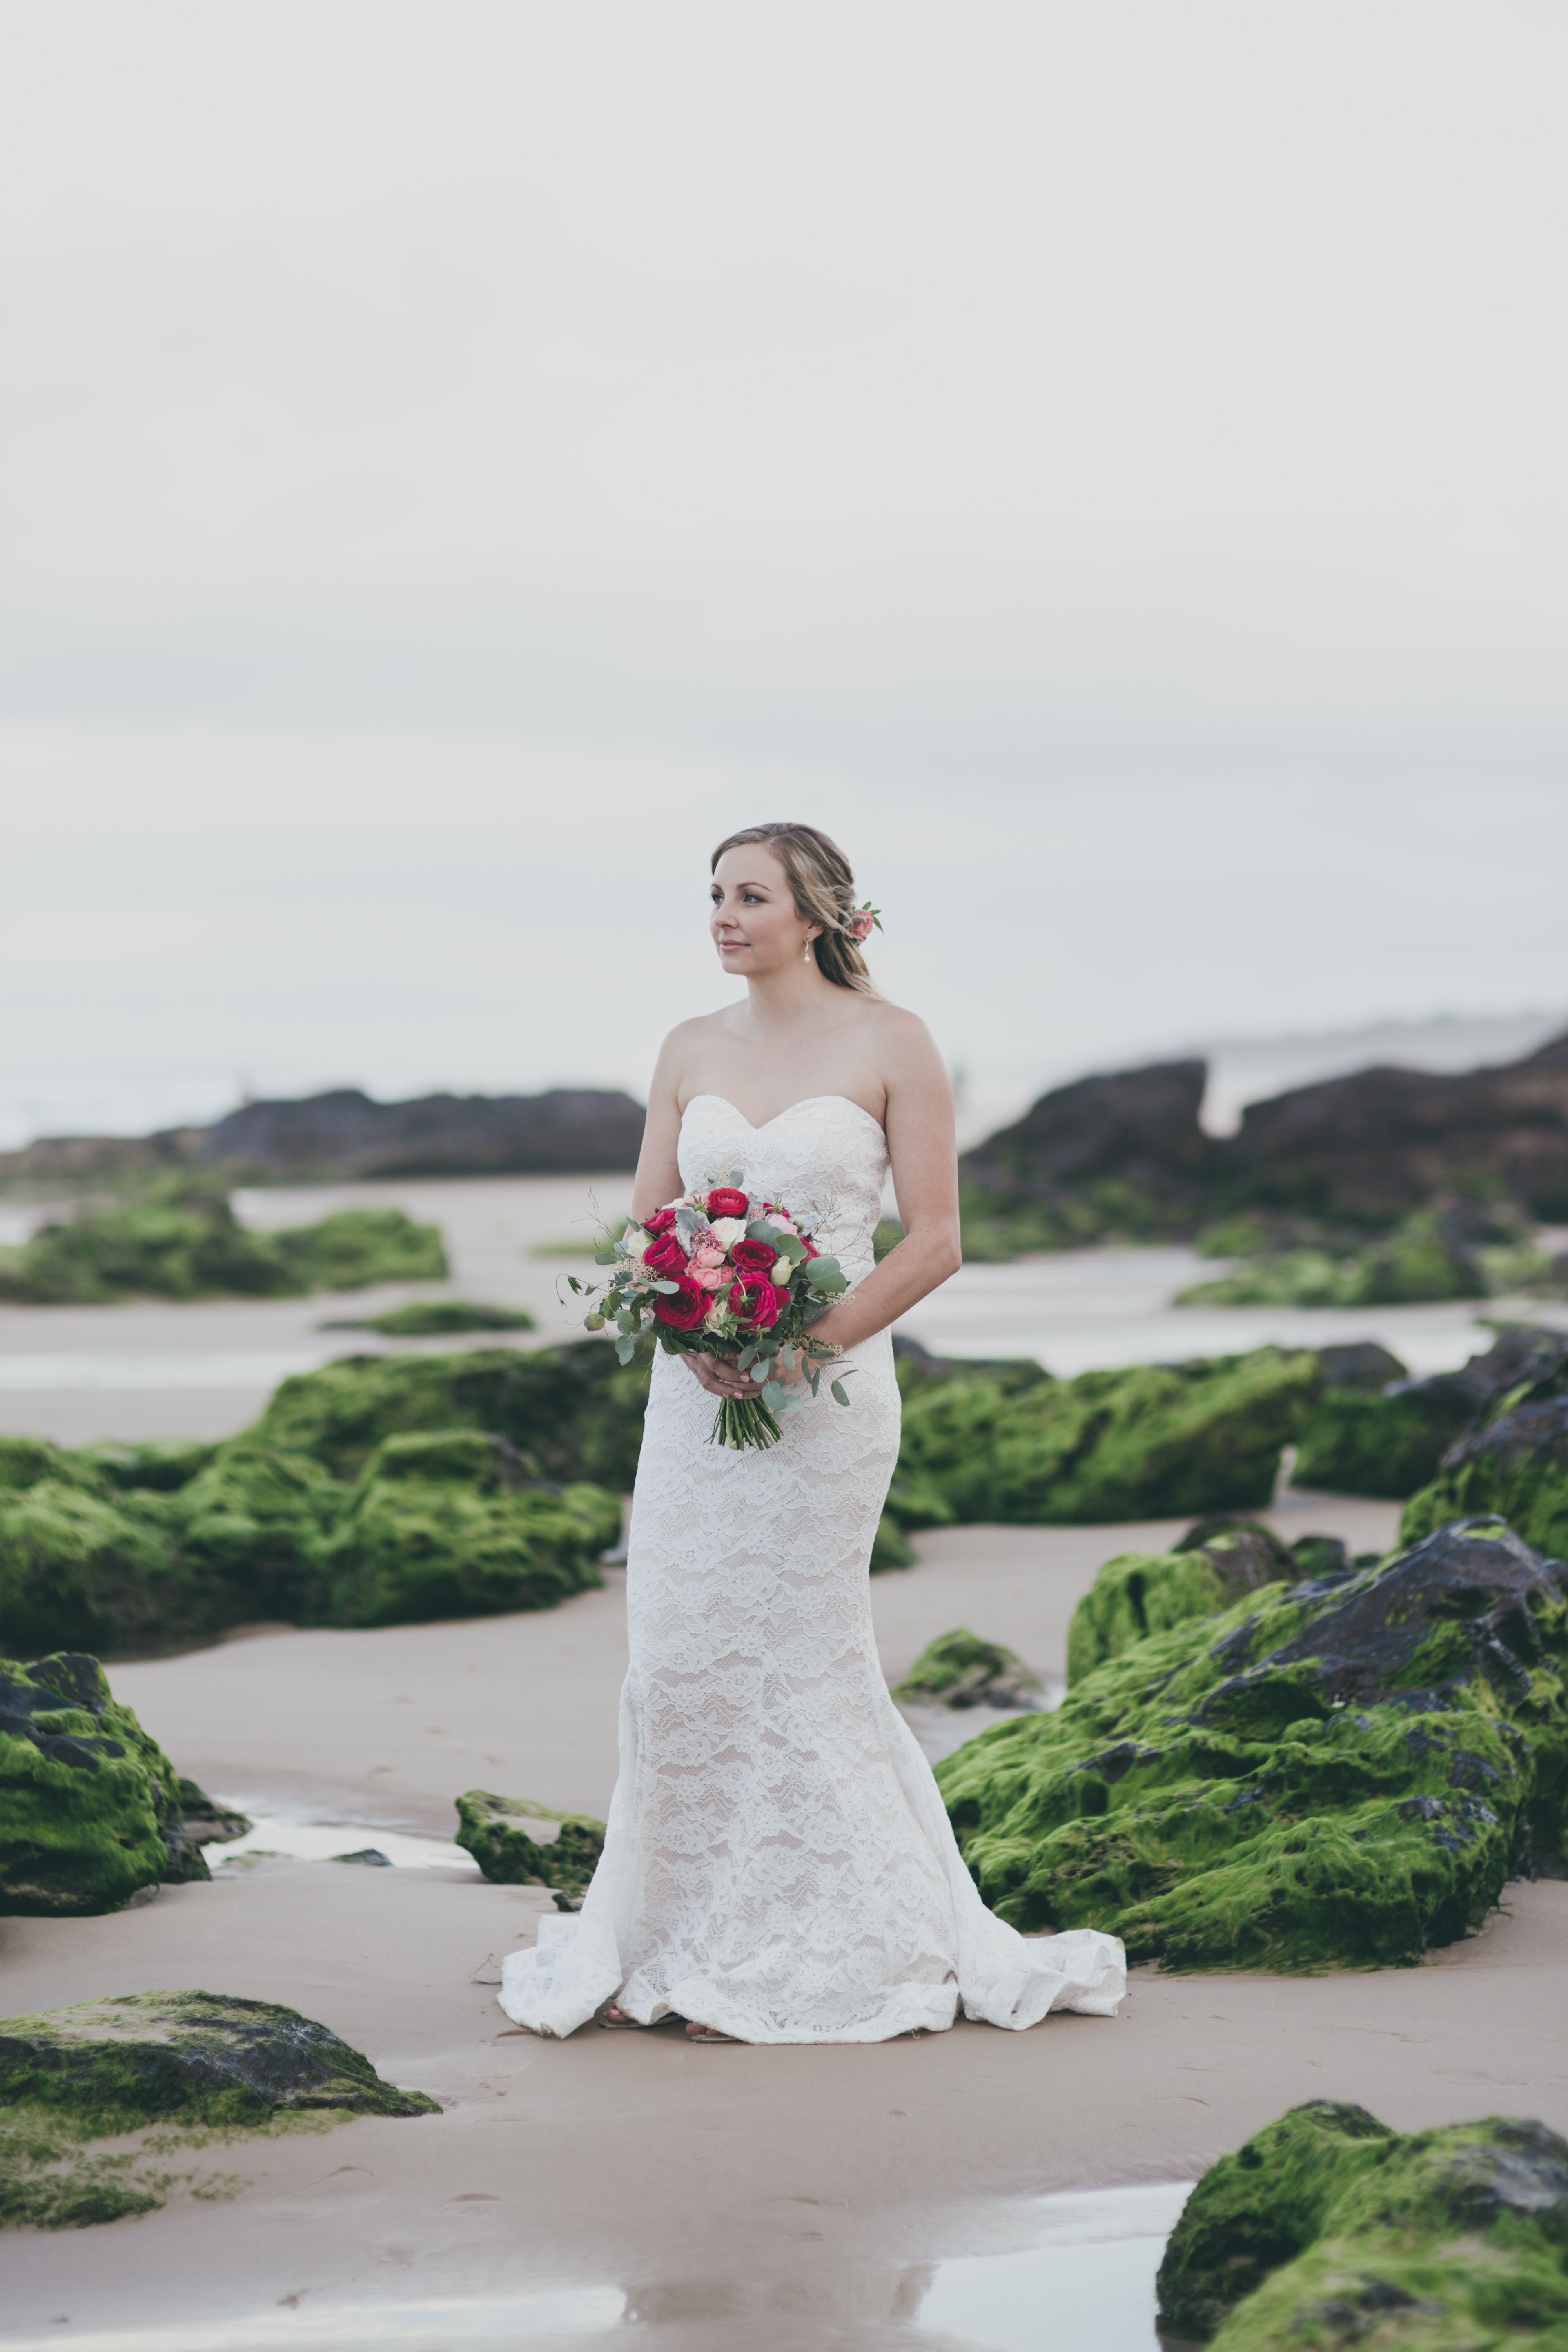 Beach wedding party dresses  Amy and Jamie had a gorgeous beach wedding with the beautiful bride